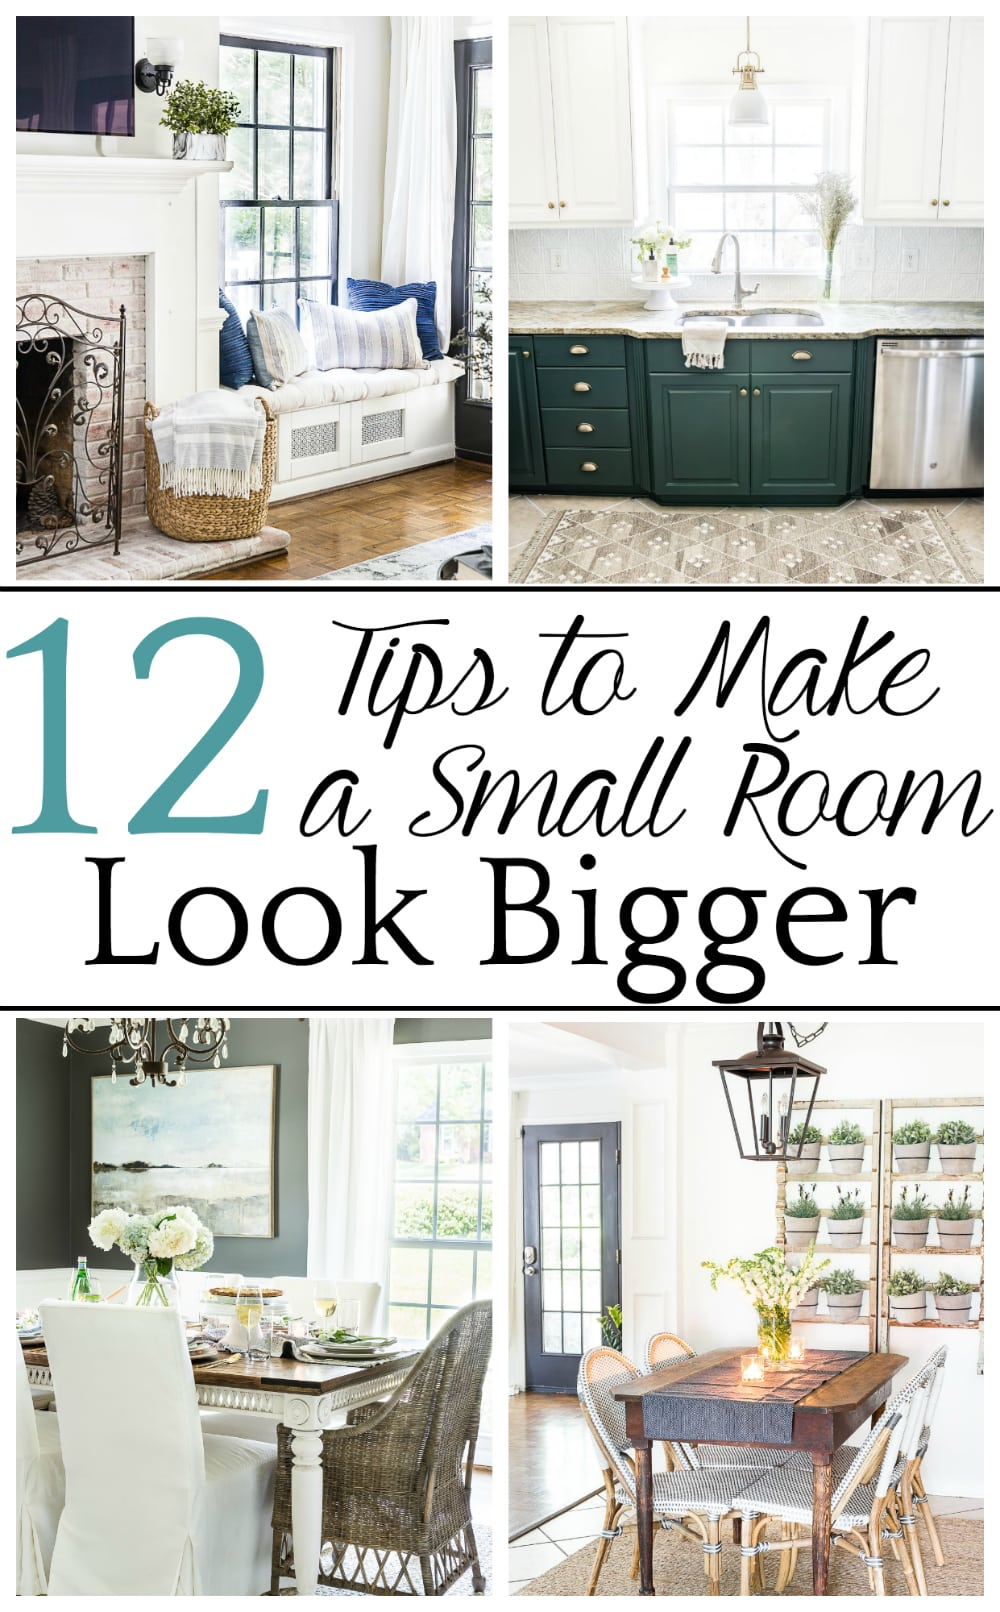 make living room spacious using simple and smart tricks the interior design company 12 tips for decorating, furniture selecting, choosing paint colors, and  utilizing function to